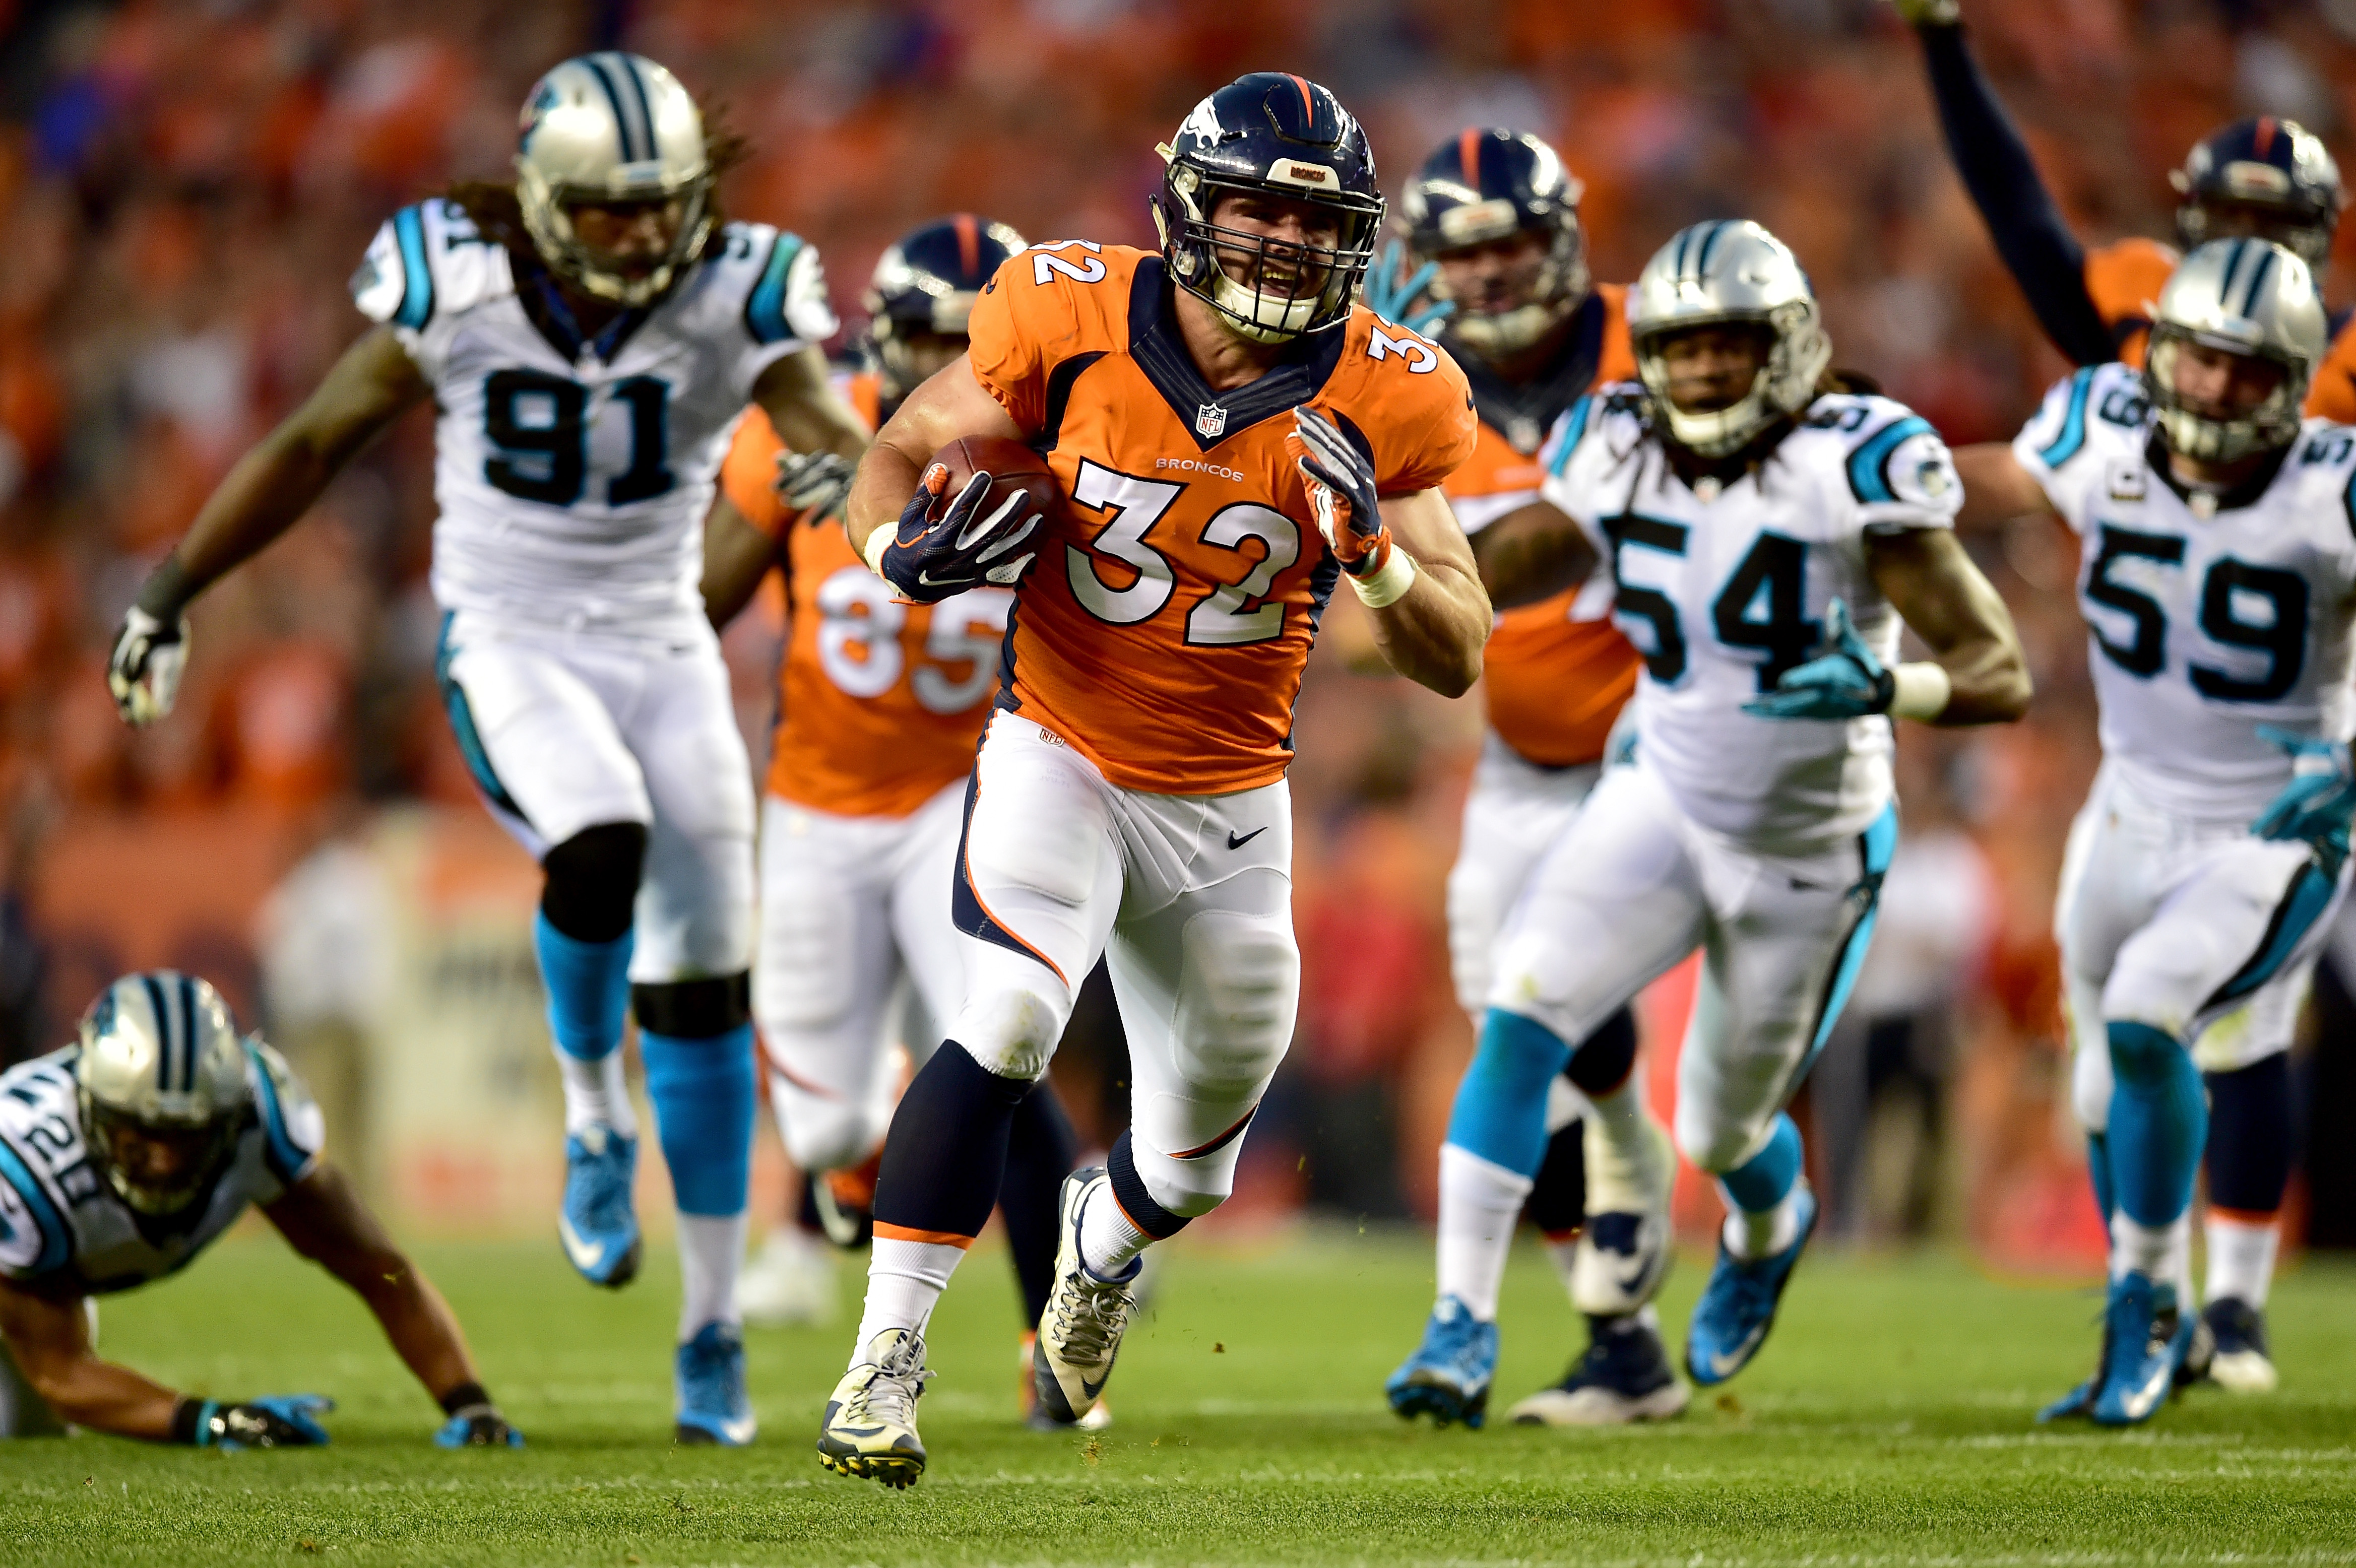 Fullback Andy Janovich of the Denver Broncos scores on a 28-yard touchdown run against the Carolina Panthers in the second quarter at Sports Authority Field at Mile High on September 8, 2016 in Denver, Colorado. (Photo by Dustin Bradford/Getty Images)